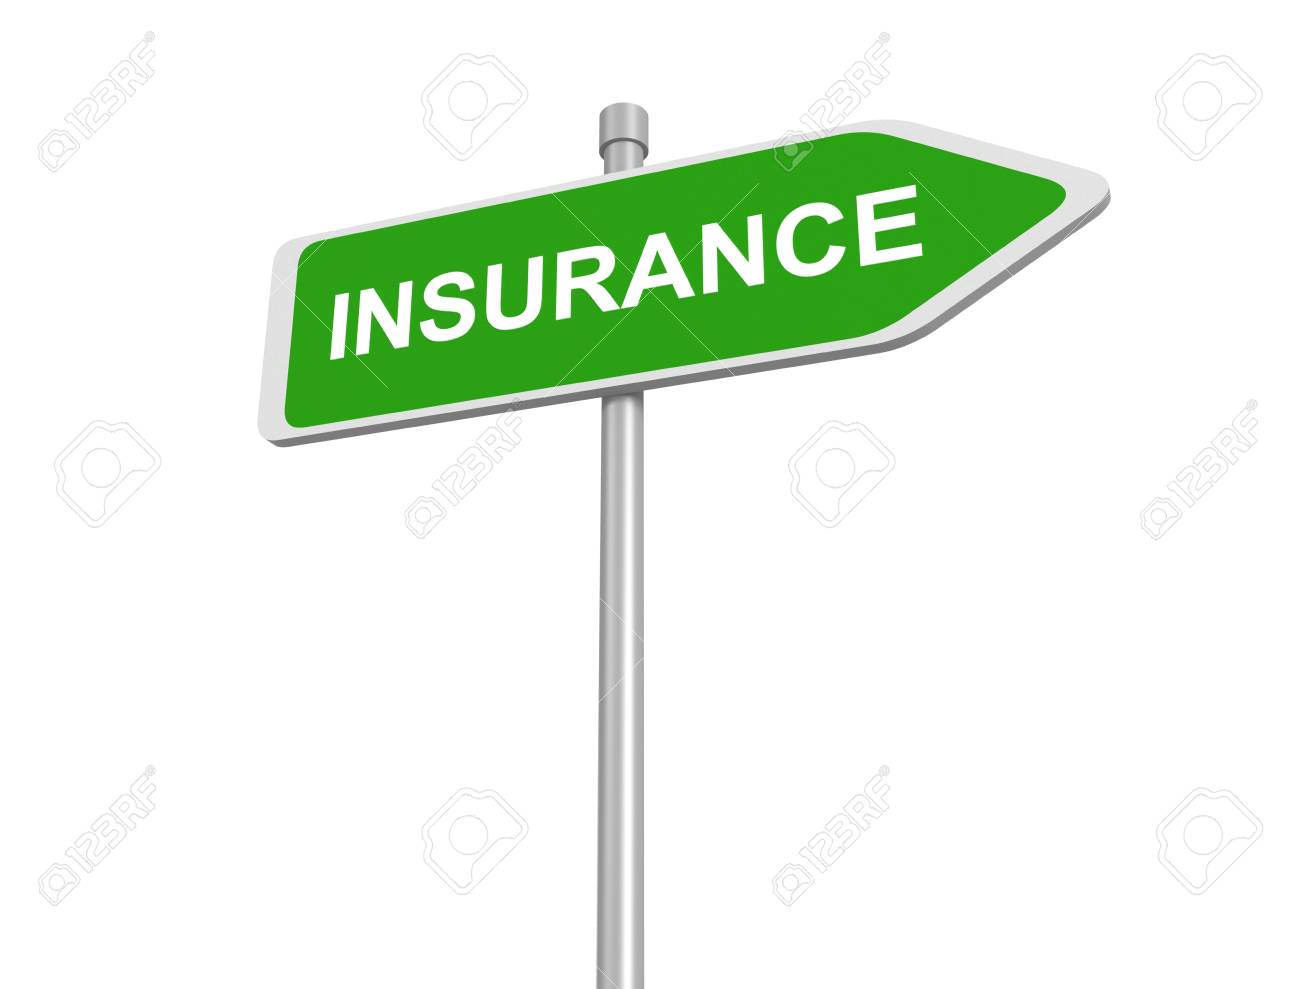 Insurance Road Sign Insurance Risk Management Pay Premium At